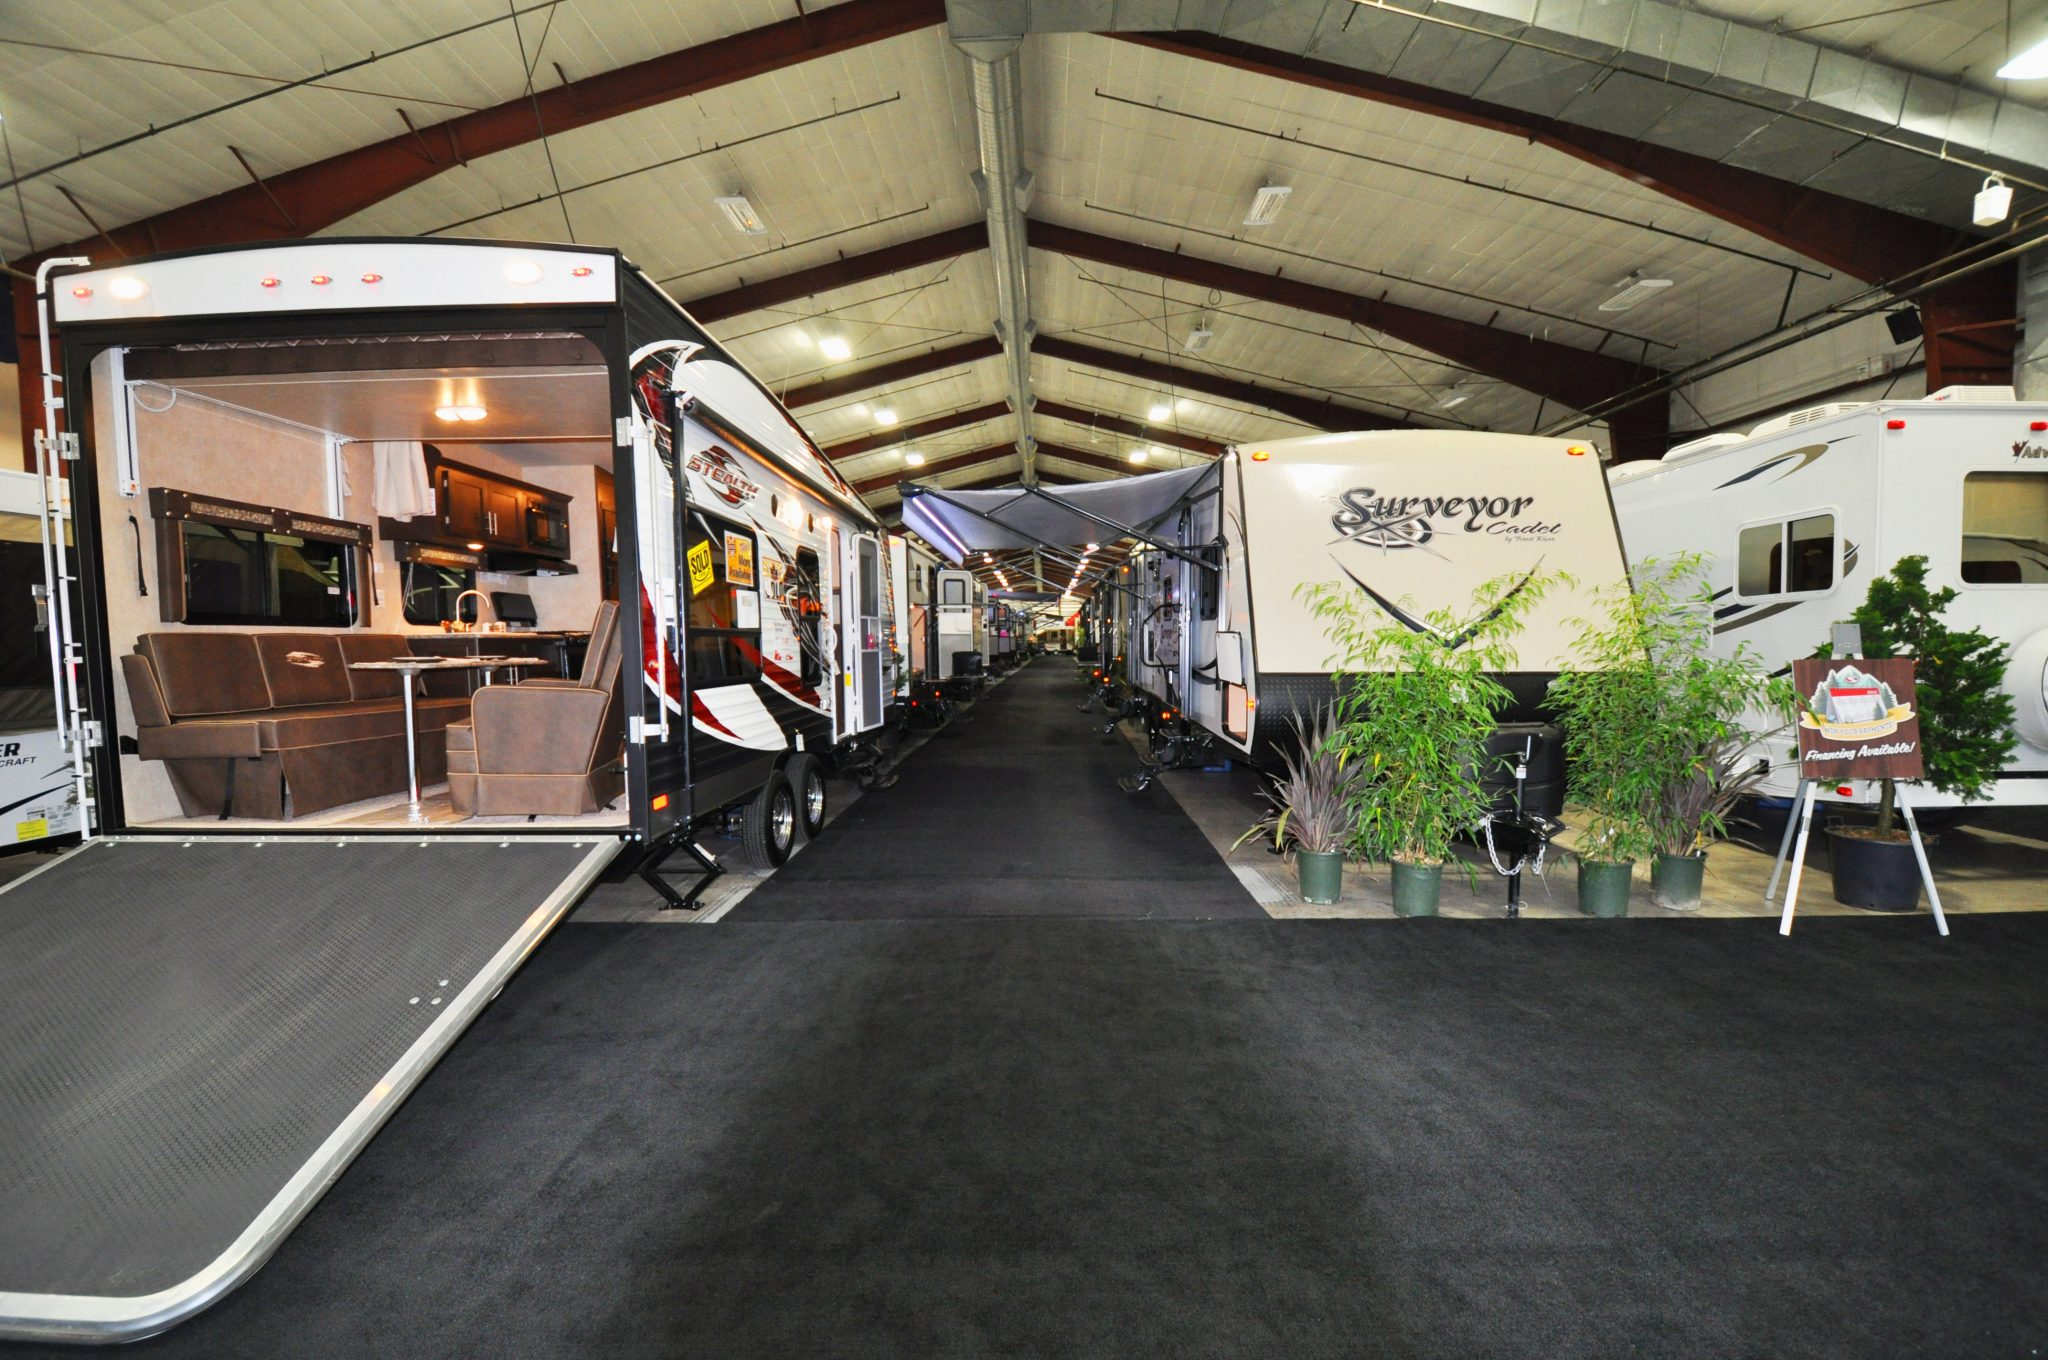 BC'S ONLY FALL RV SHOW AND SALE IS BACK  AT ABBOTSFORD TRADEX THIS SEPTEMBER